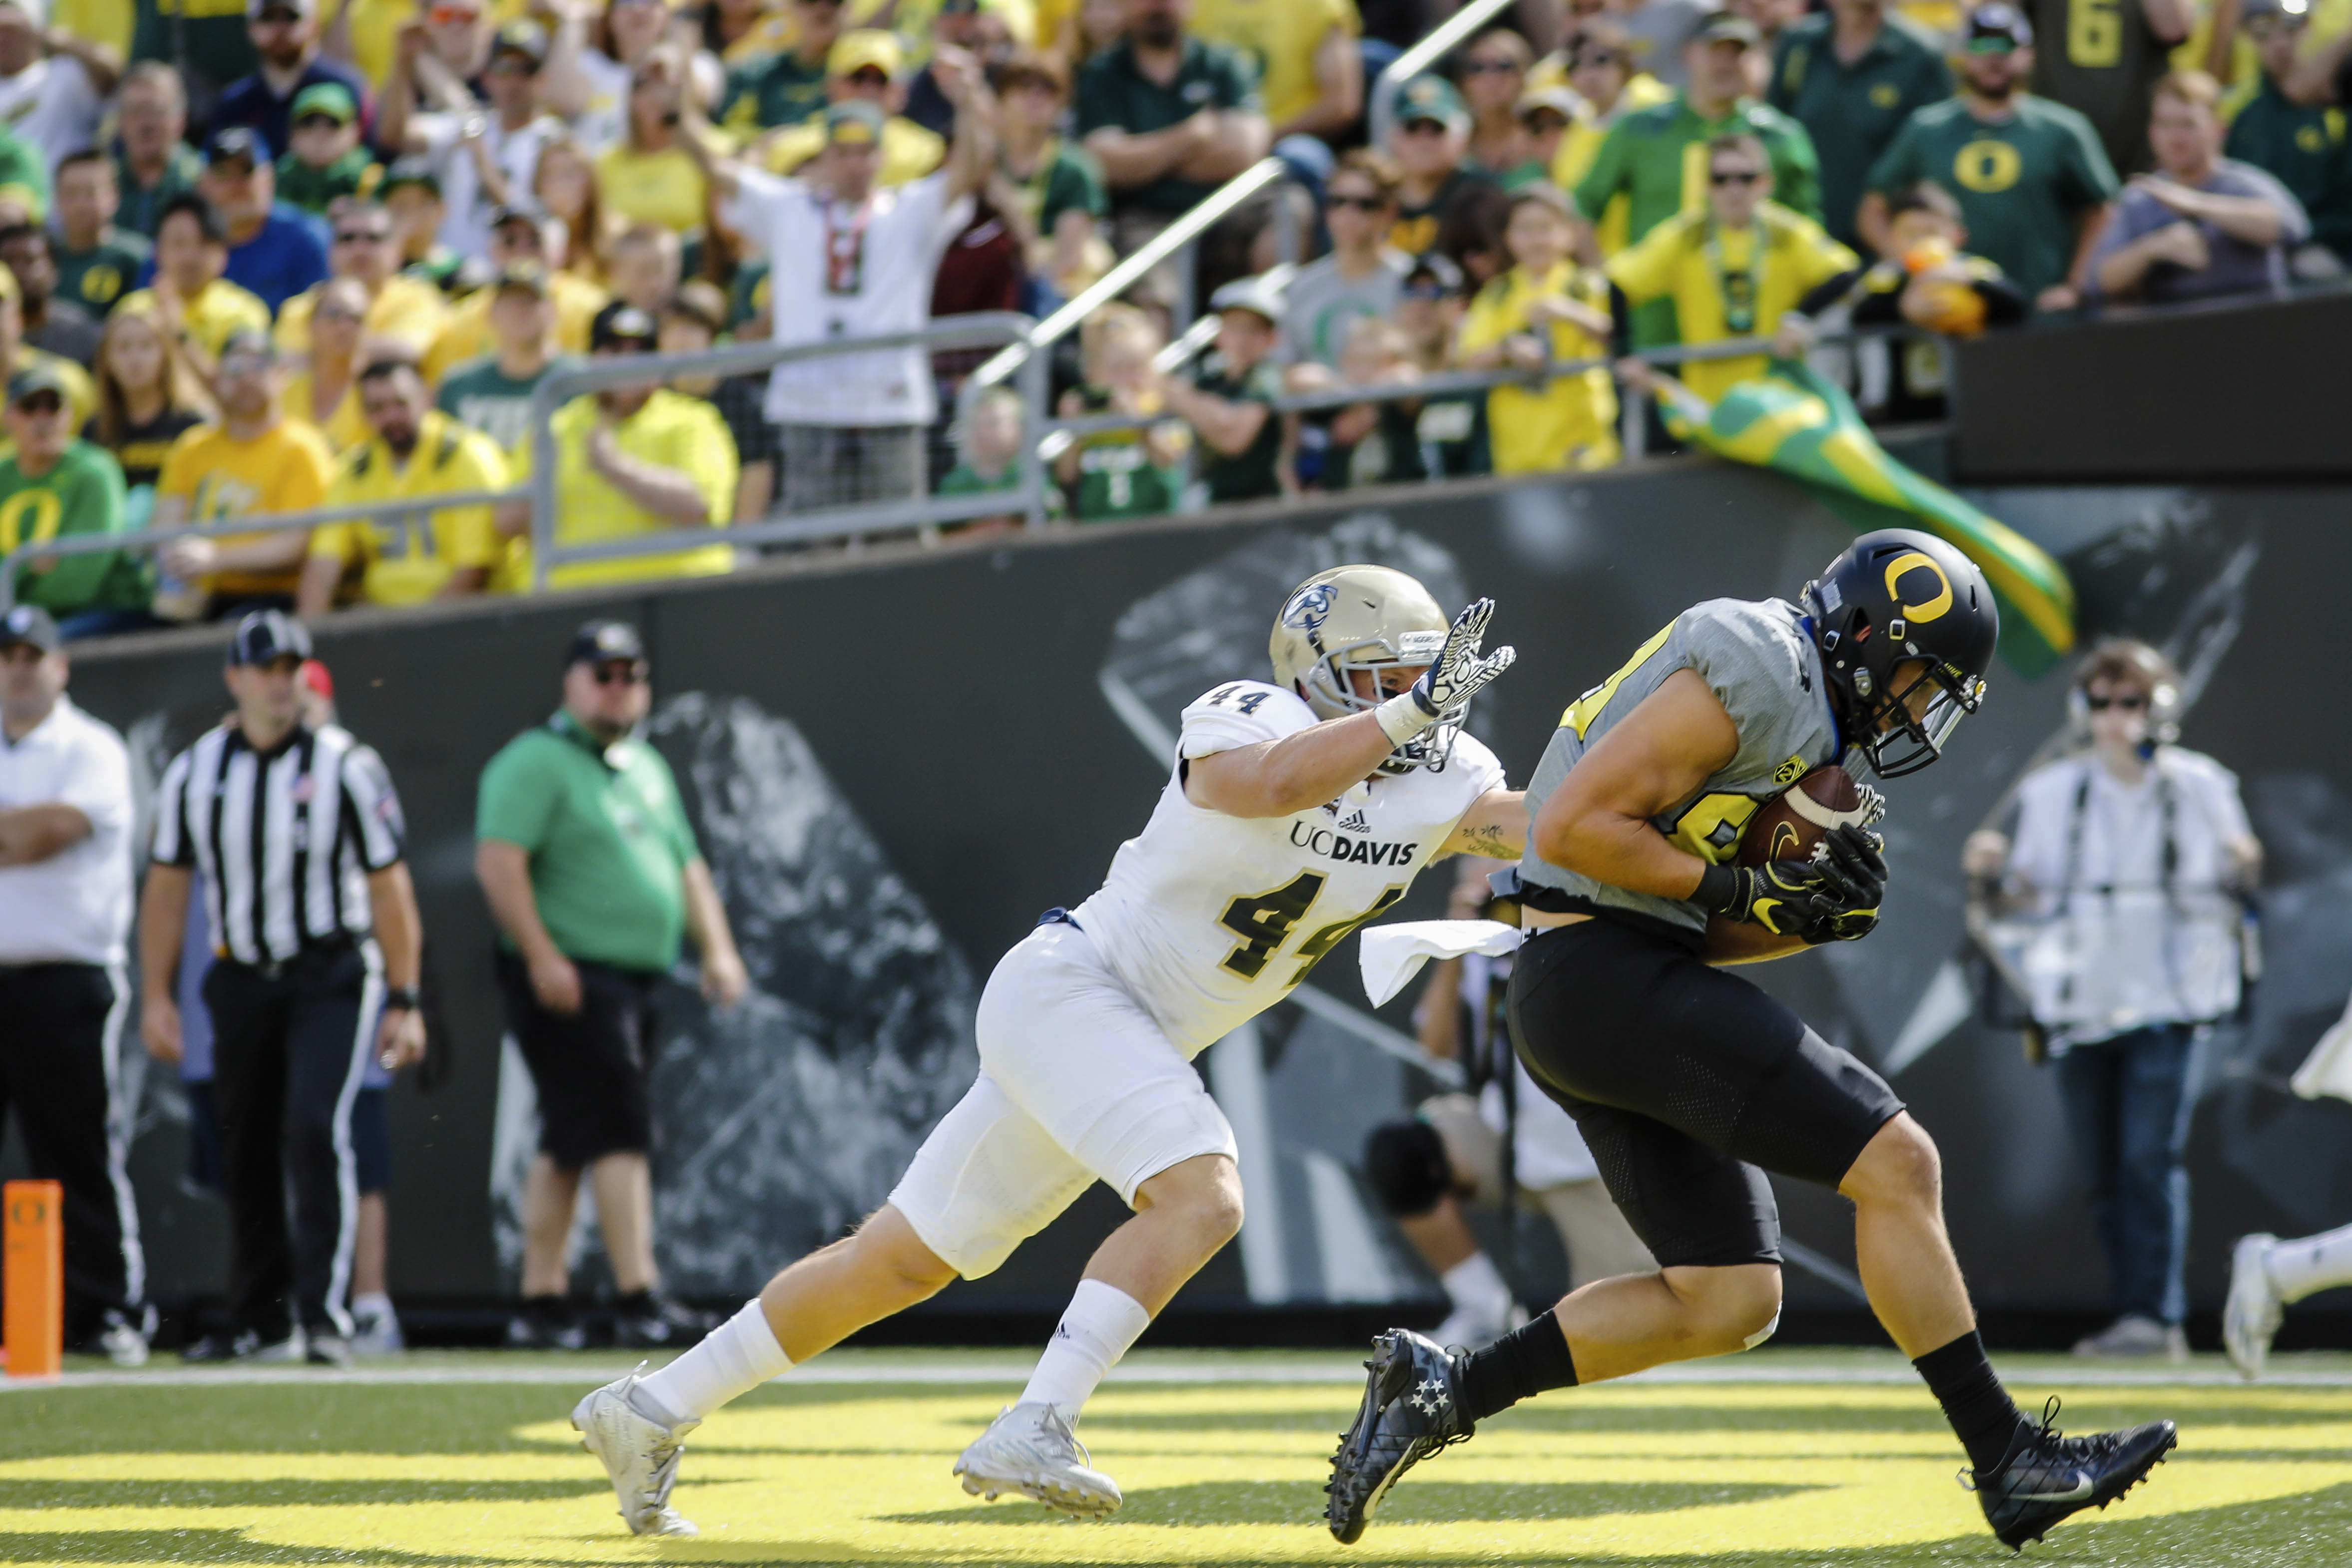 Oregon tight end Johnny Mundt scores a touchdown on a pass reception during the second quarter as UC Davis defensive back Zach Jones (44) follows, during an NCAA college football game in Eugene, Ore., Saturday, Sept. 3, 2016. (AP Photo/Thomas Boyd)